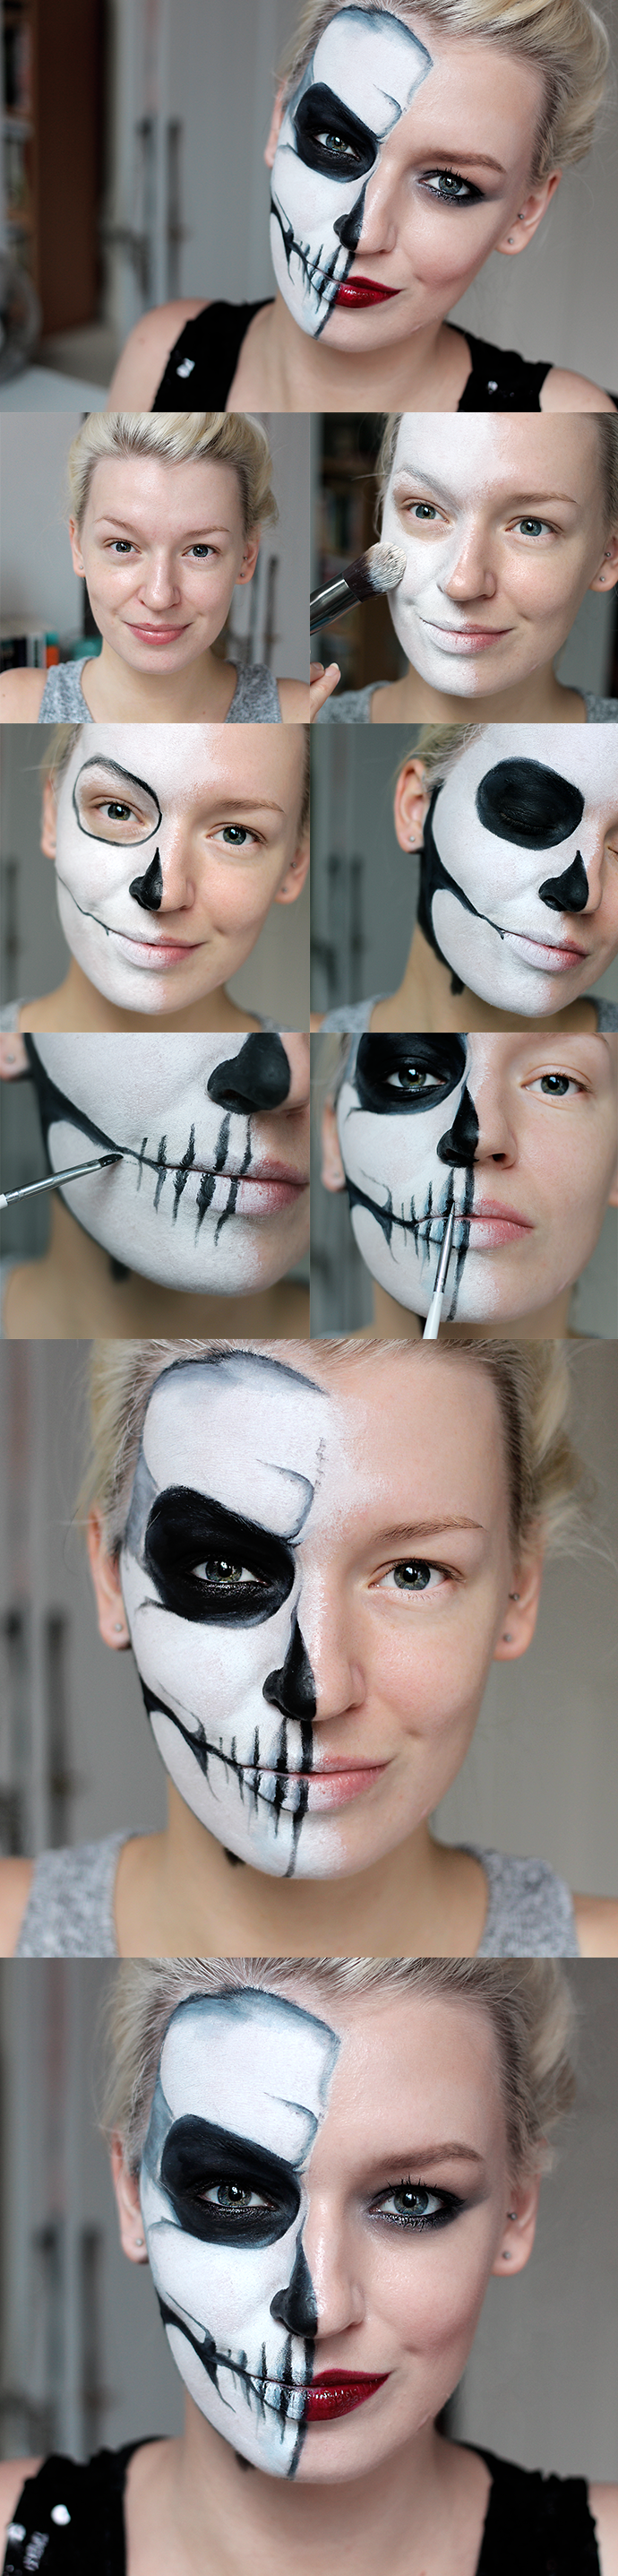 Halloween Make Up Anleitung Halloween Simple Half Skull Glam Make Up Tutorial By Zoe Newlove